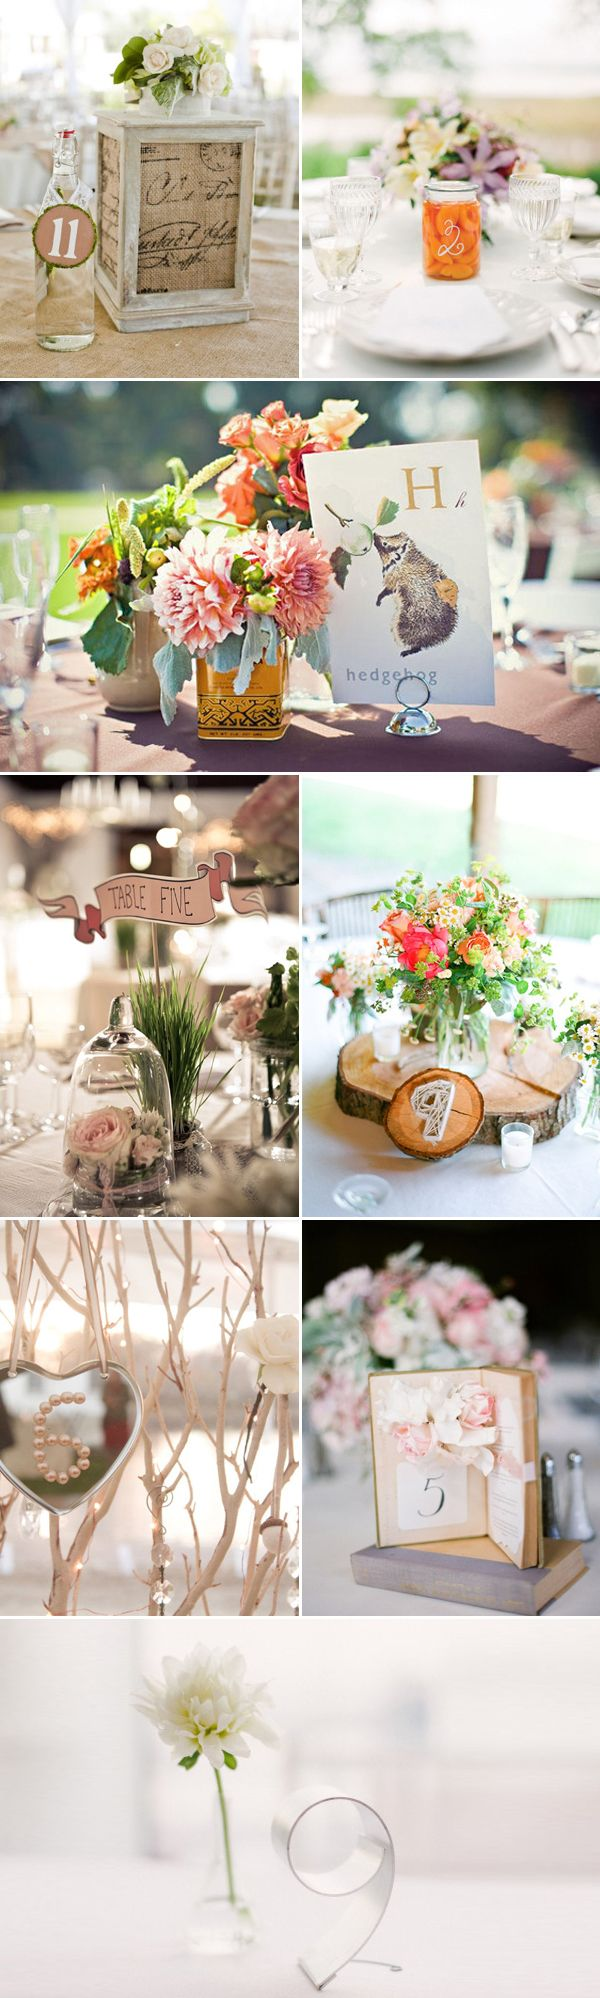 Creative Table Numbers - http://www.praisewedding.com/archives/2228